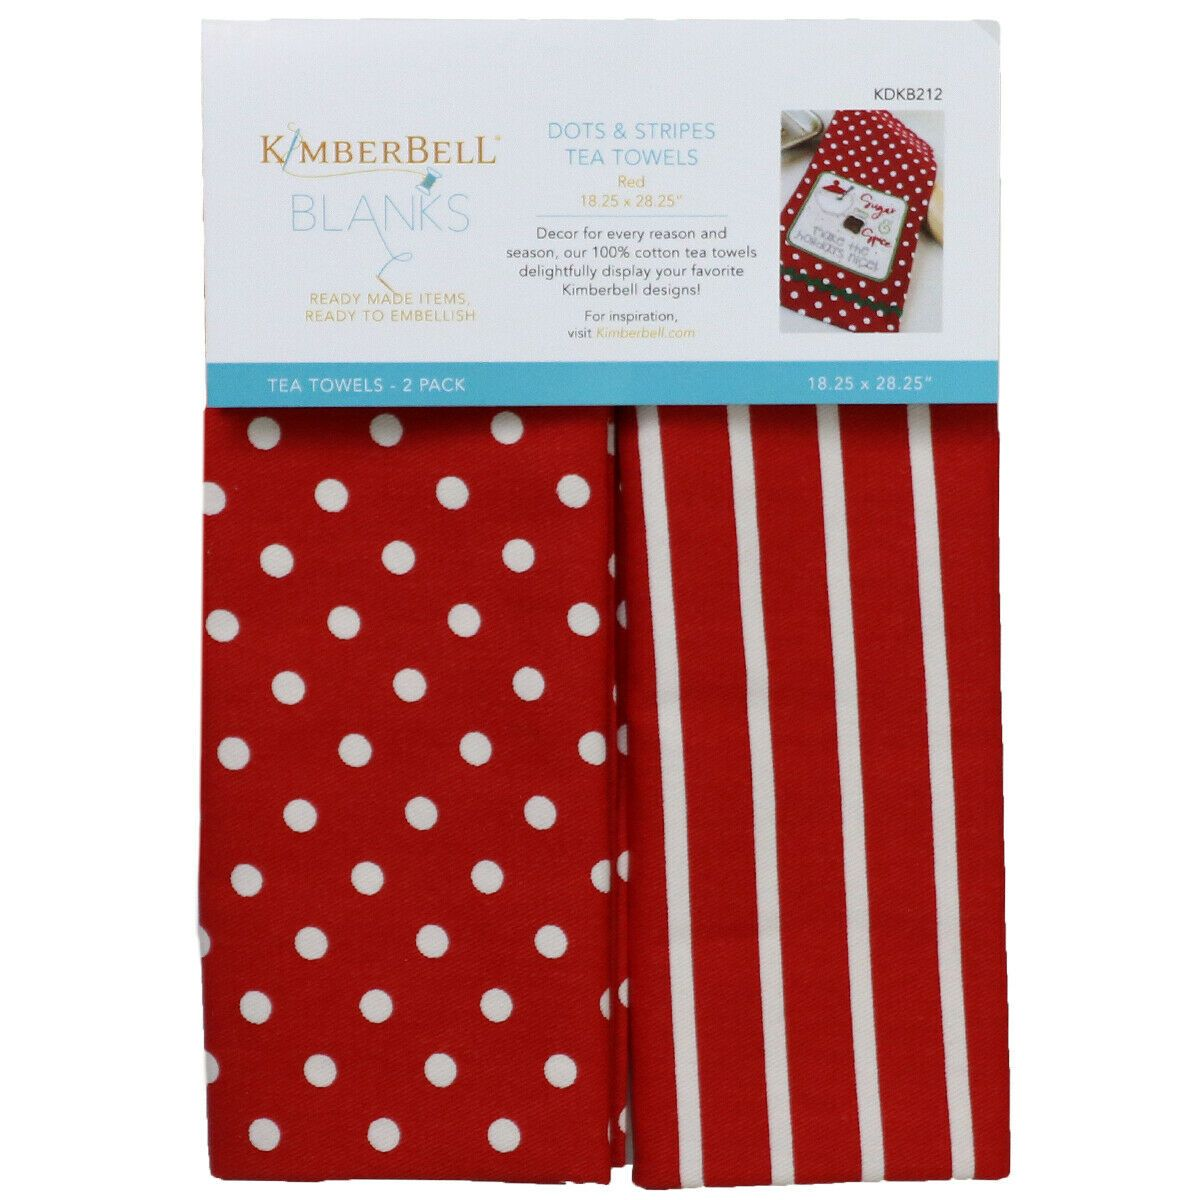 Tea Towels Dots and Stripes by Kimberbell Blanks